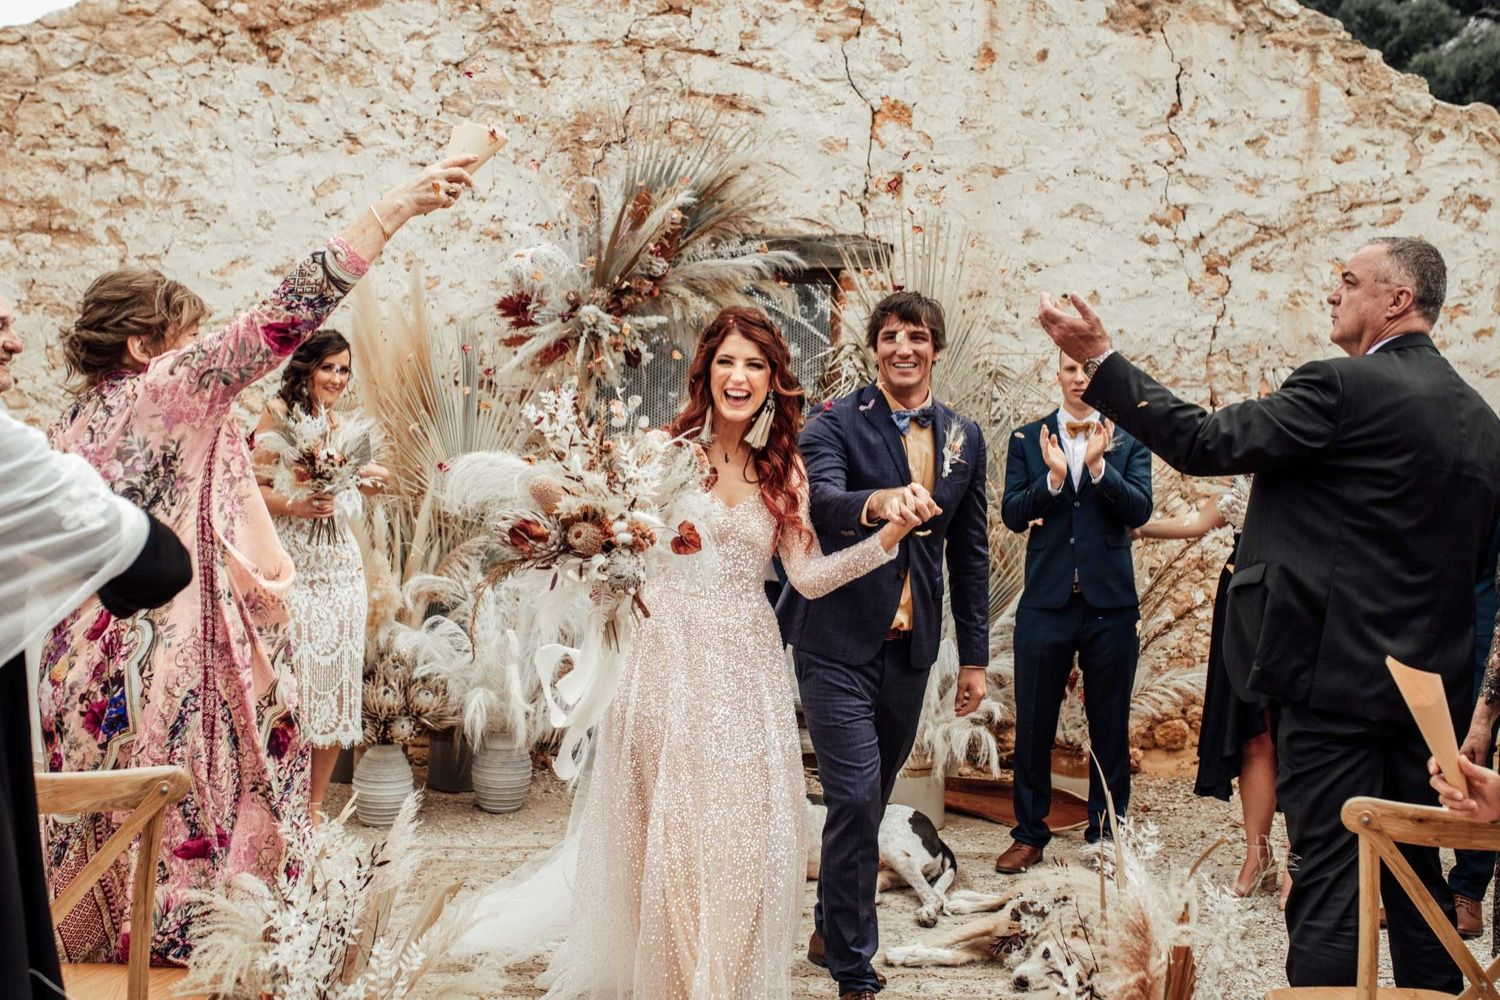 Woodburn Homestead Wedding Adelaide South Australia Venues For Ceremony Professional Wedding Photographer Dried Flowers Wedding Wedding Dresses With Flowers